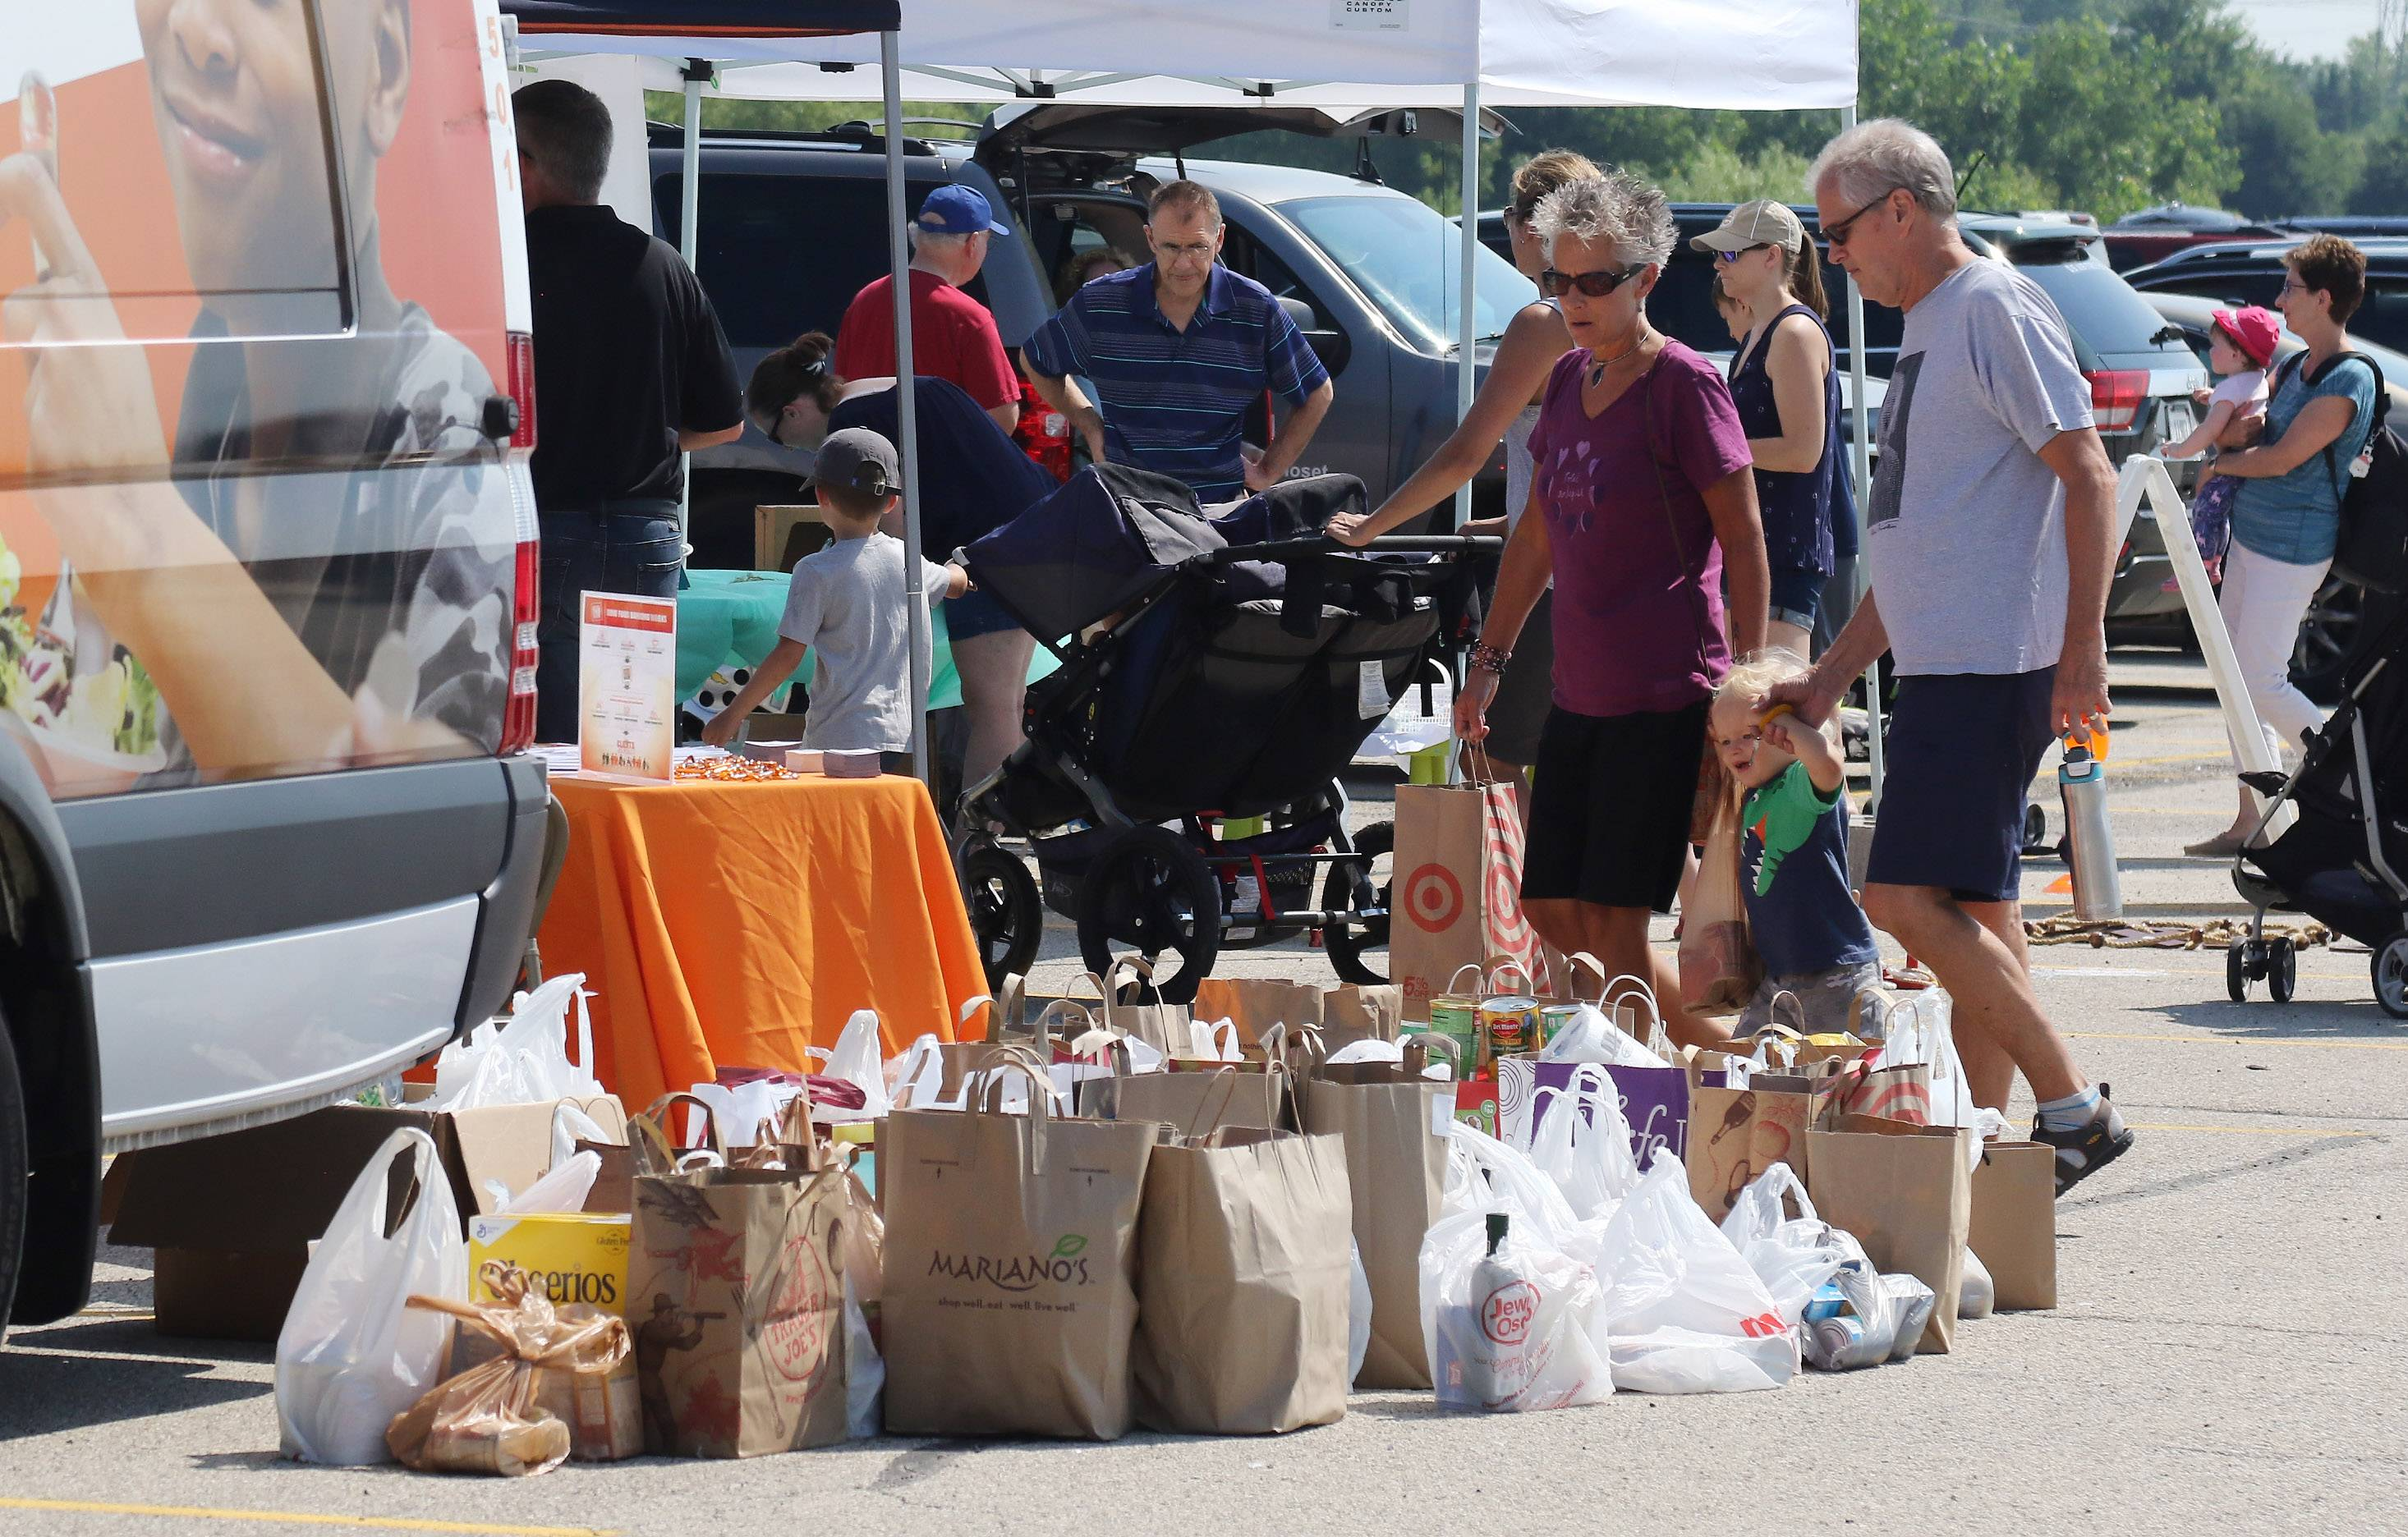 Big trucks attract lots of interest, food donations